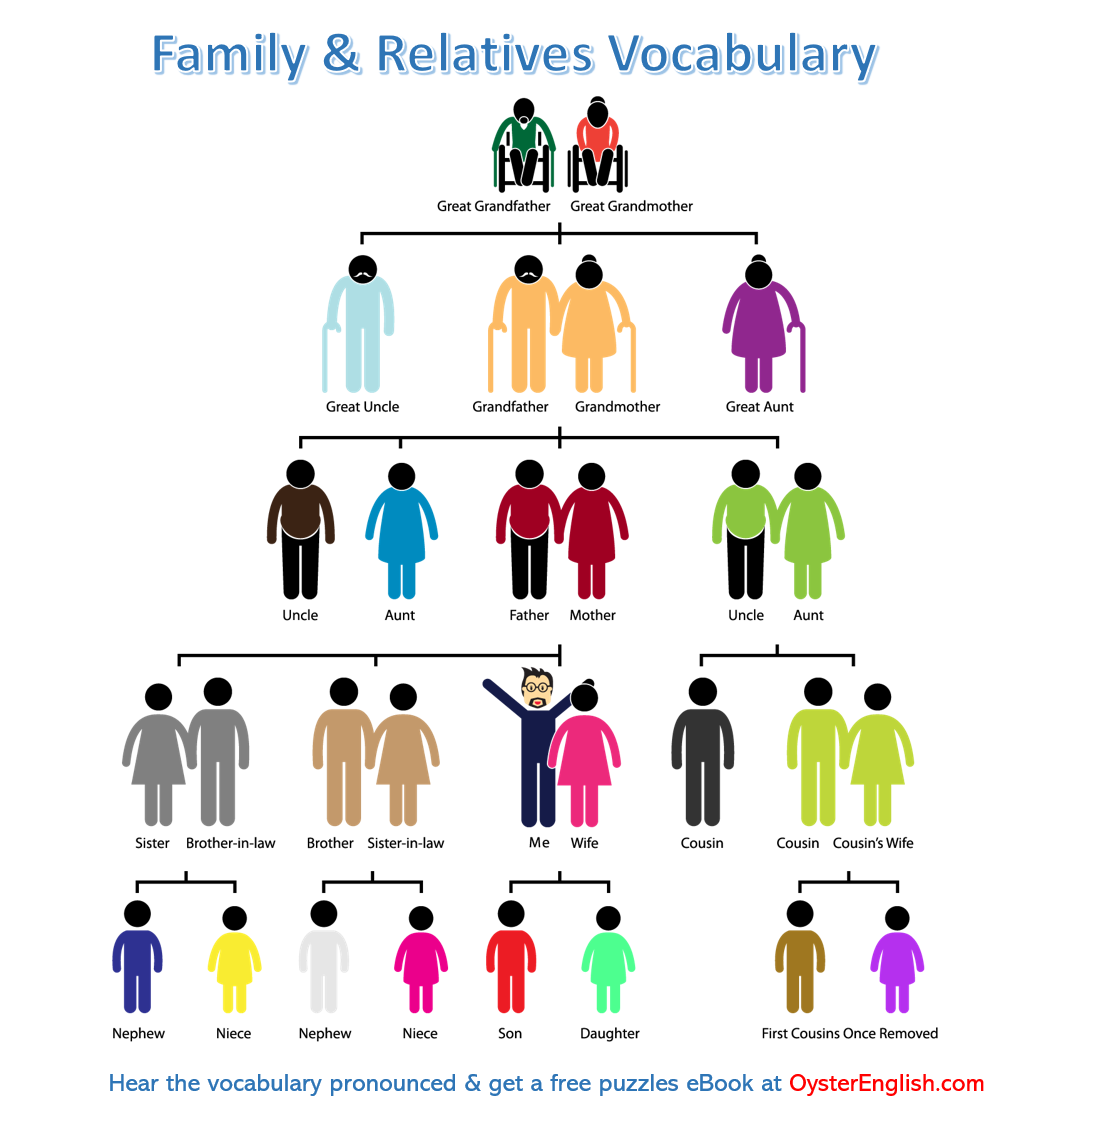 A family tree depicting the vocabulary on this page.